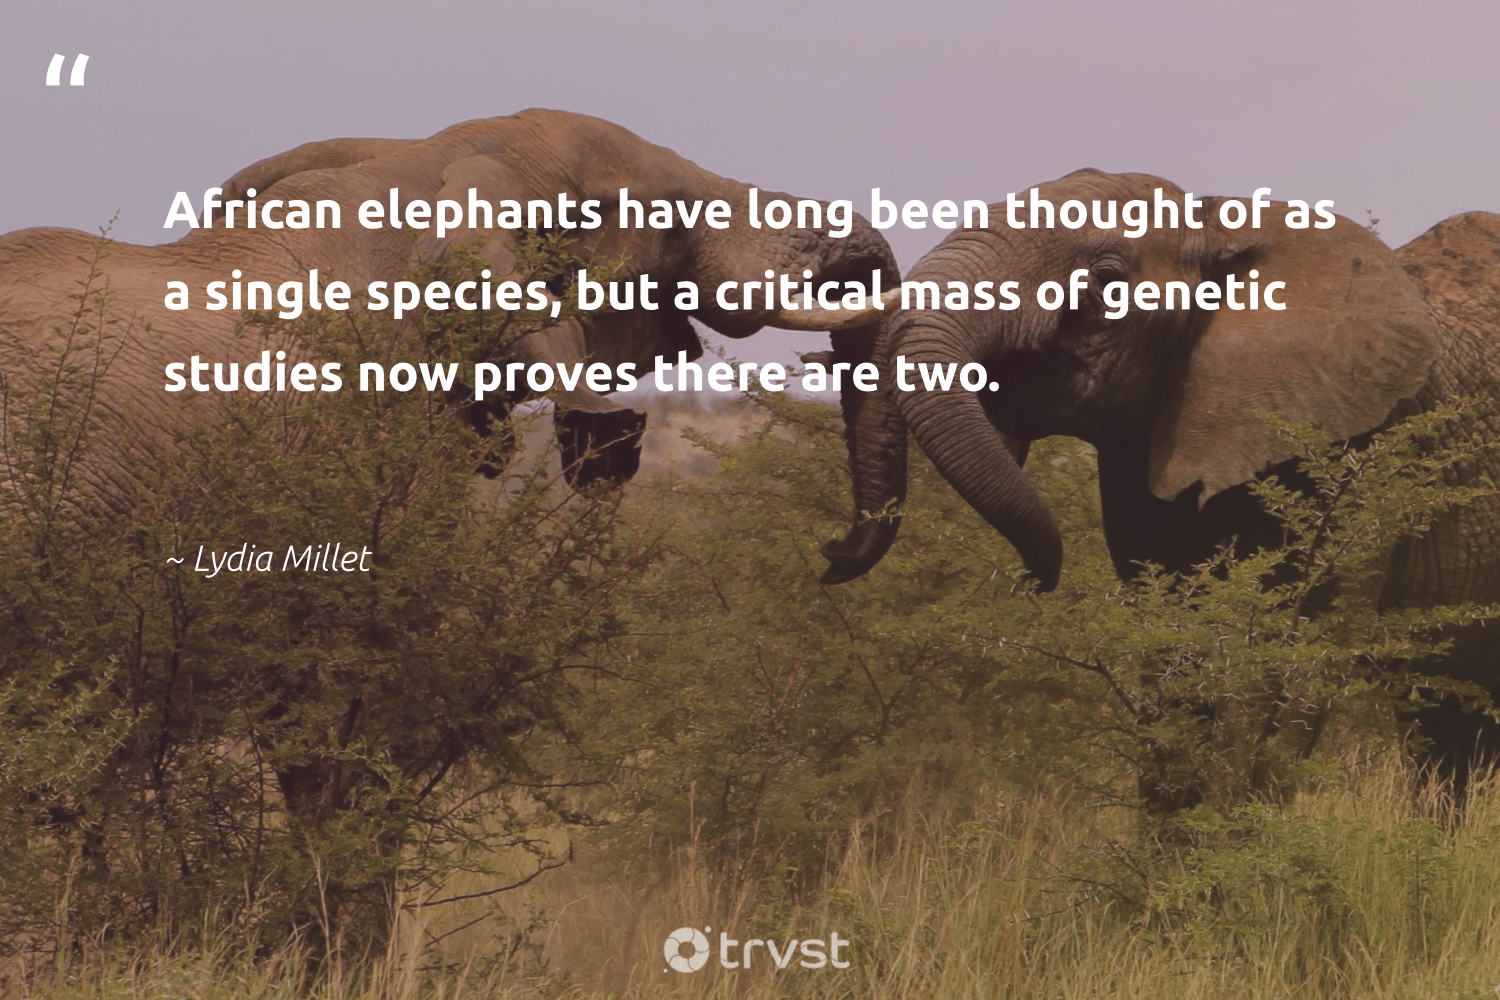 """""""African elephants have long been thought of as a single species, but a critical mass of genetic studies now proves there are two.""""  - Lydia Millet #trvst #quotes #elephants #naturelovers #changetheworld #elephant #gogreen #conservation #takeaction #wildanimals #bethechange #endangeredspecies"""